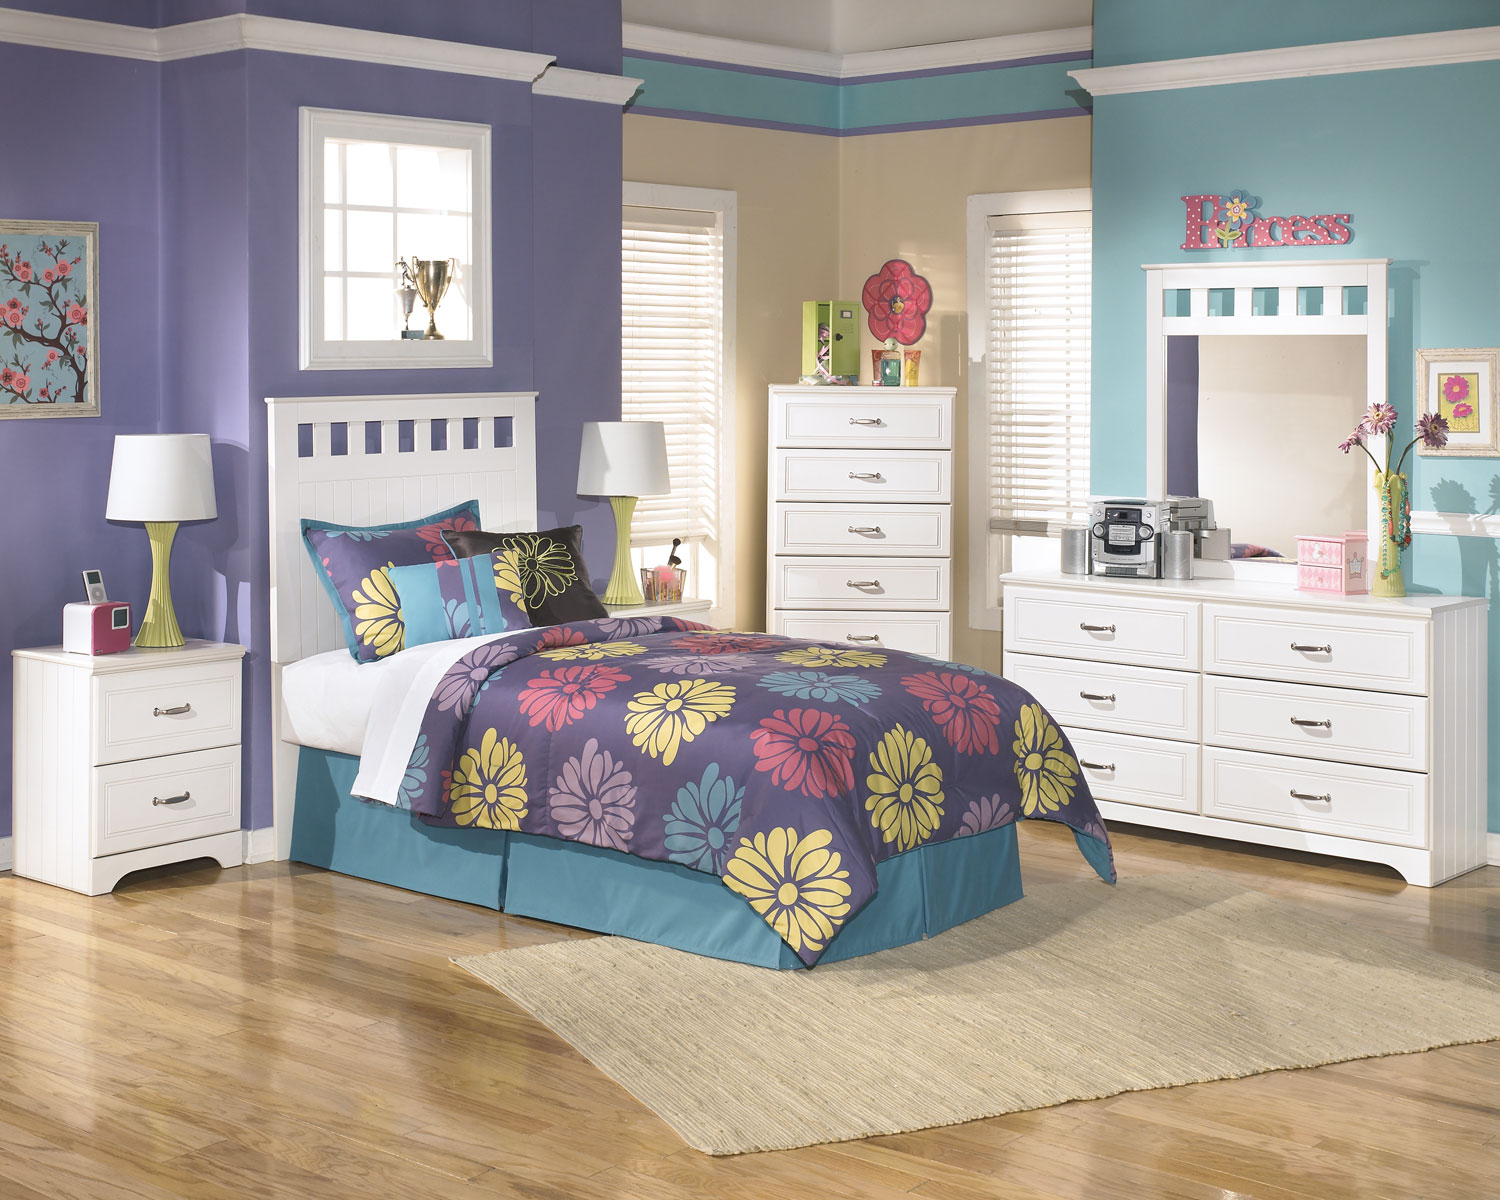 Bedroom Furniture - Lulu 5-Piece Full Panel Headboard Package